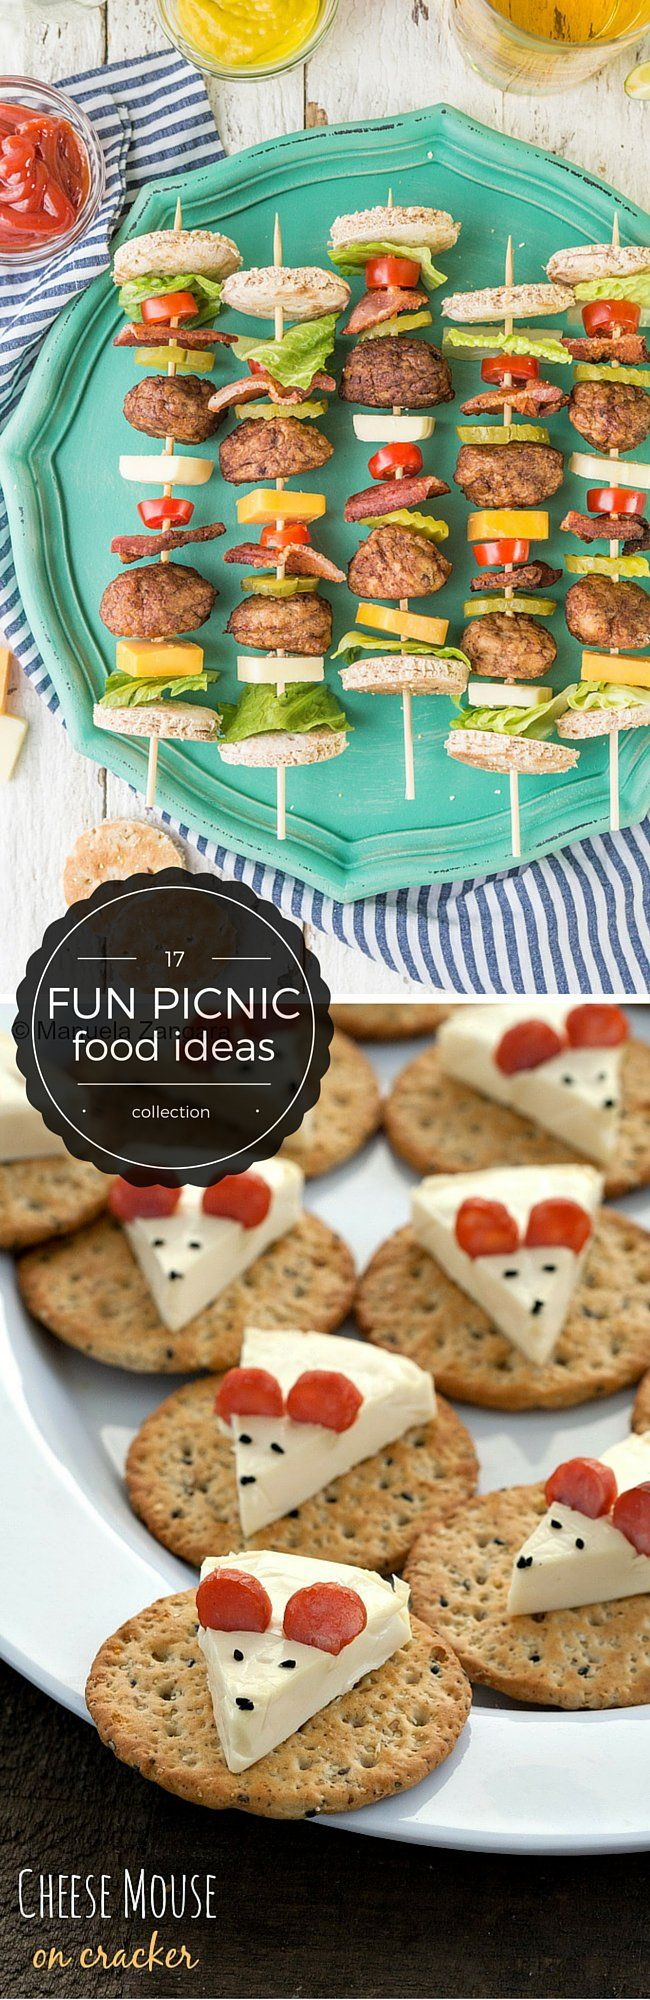 17 Fun Picnic Food Ideas